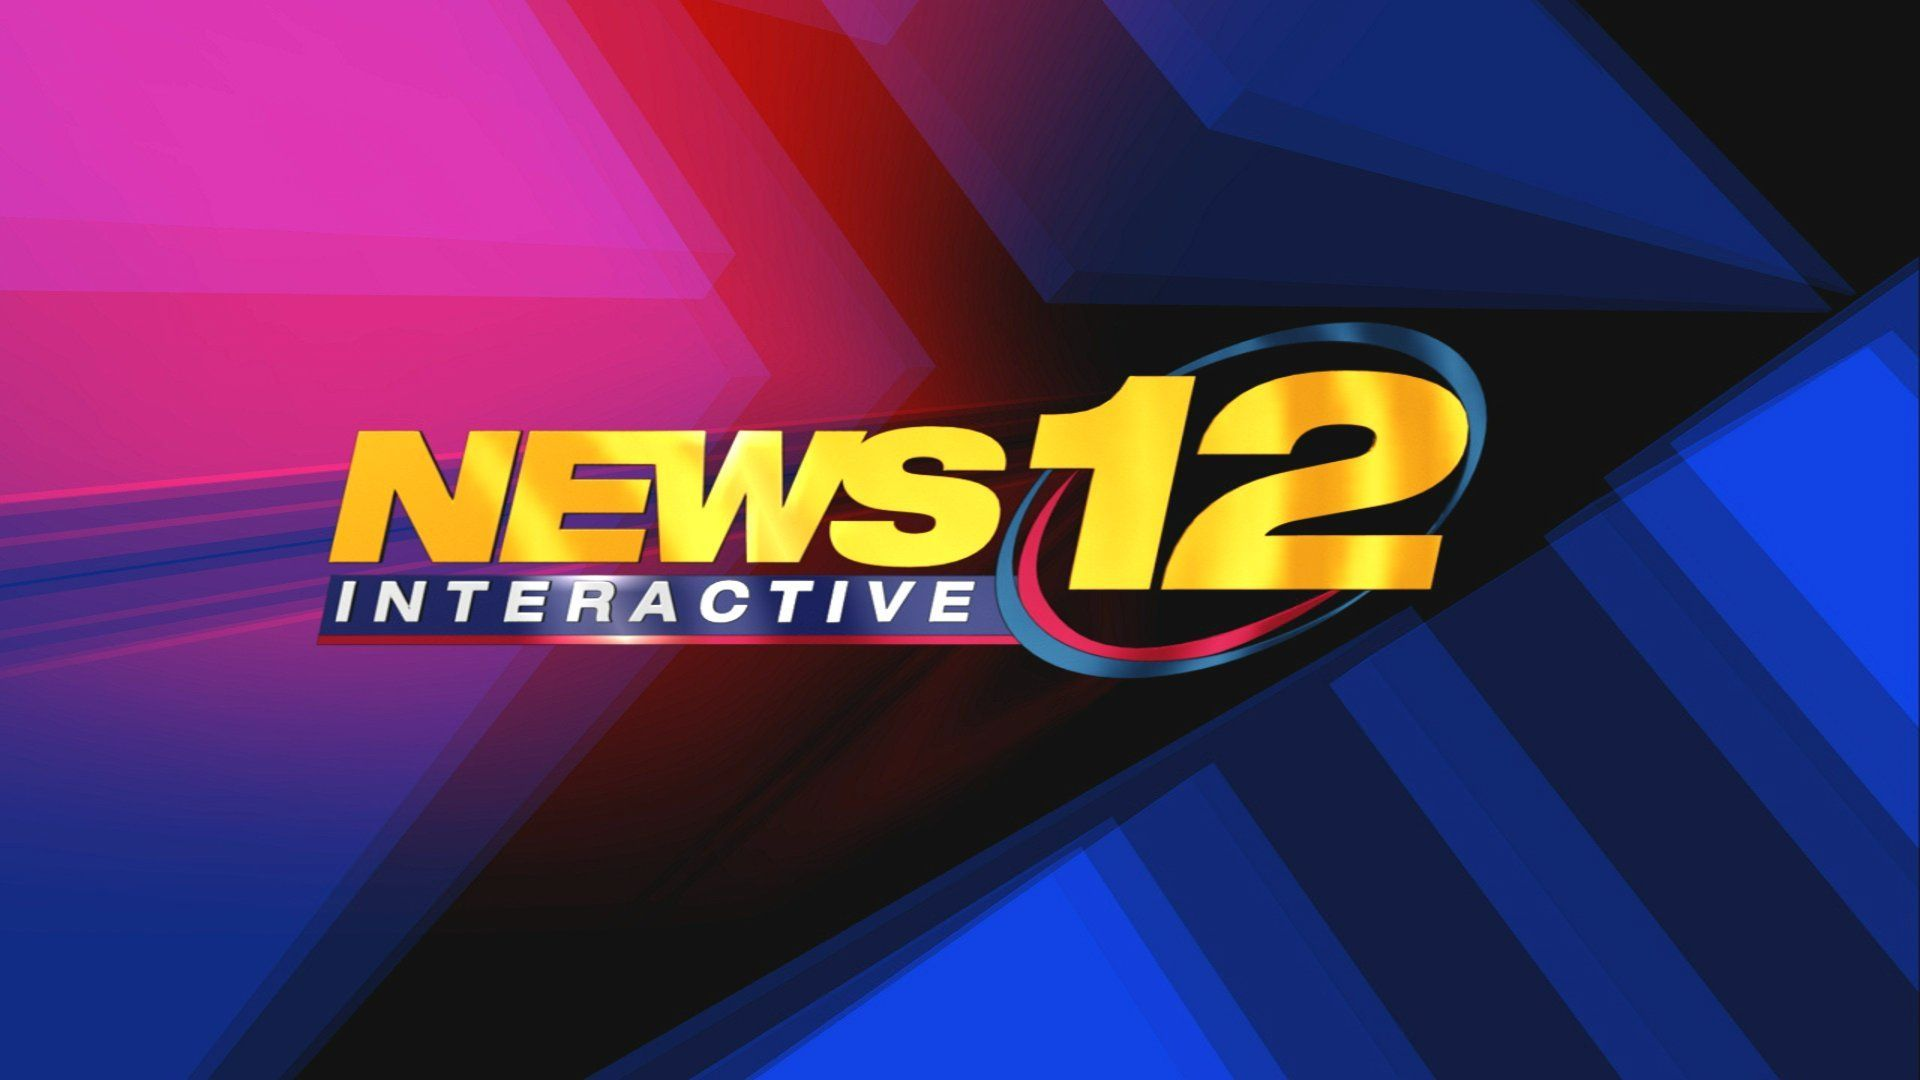 News 12 Brooklyn brooklyn news12 com/ News 12 Brooklyn Find all the